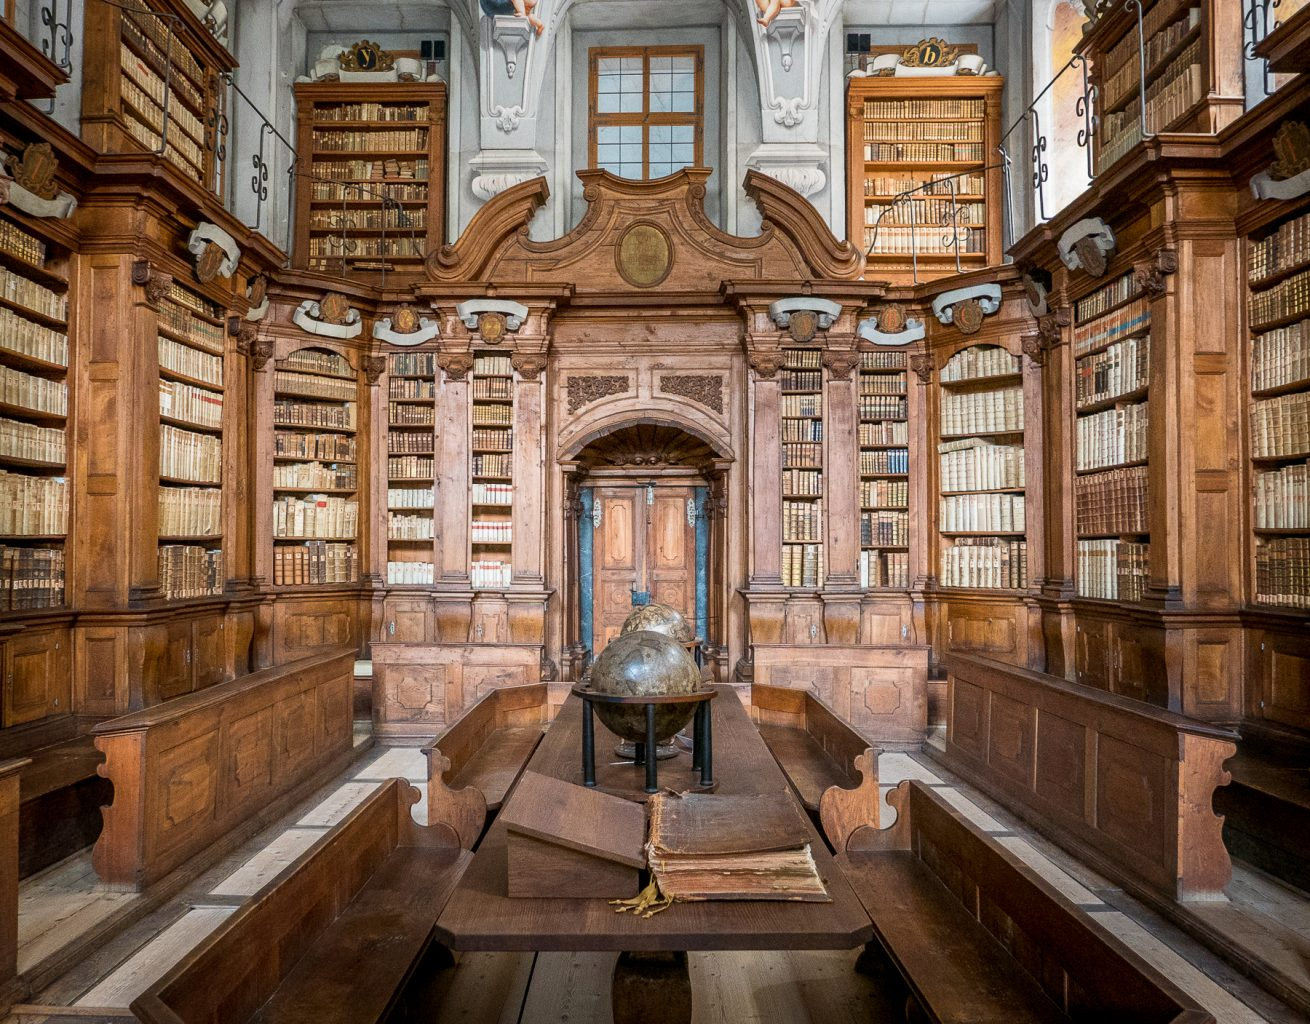 Creating a defining moment on a trip - Seminary Library